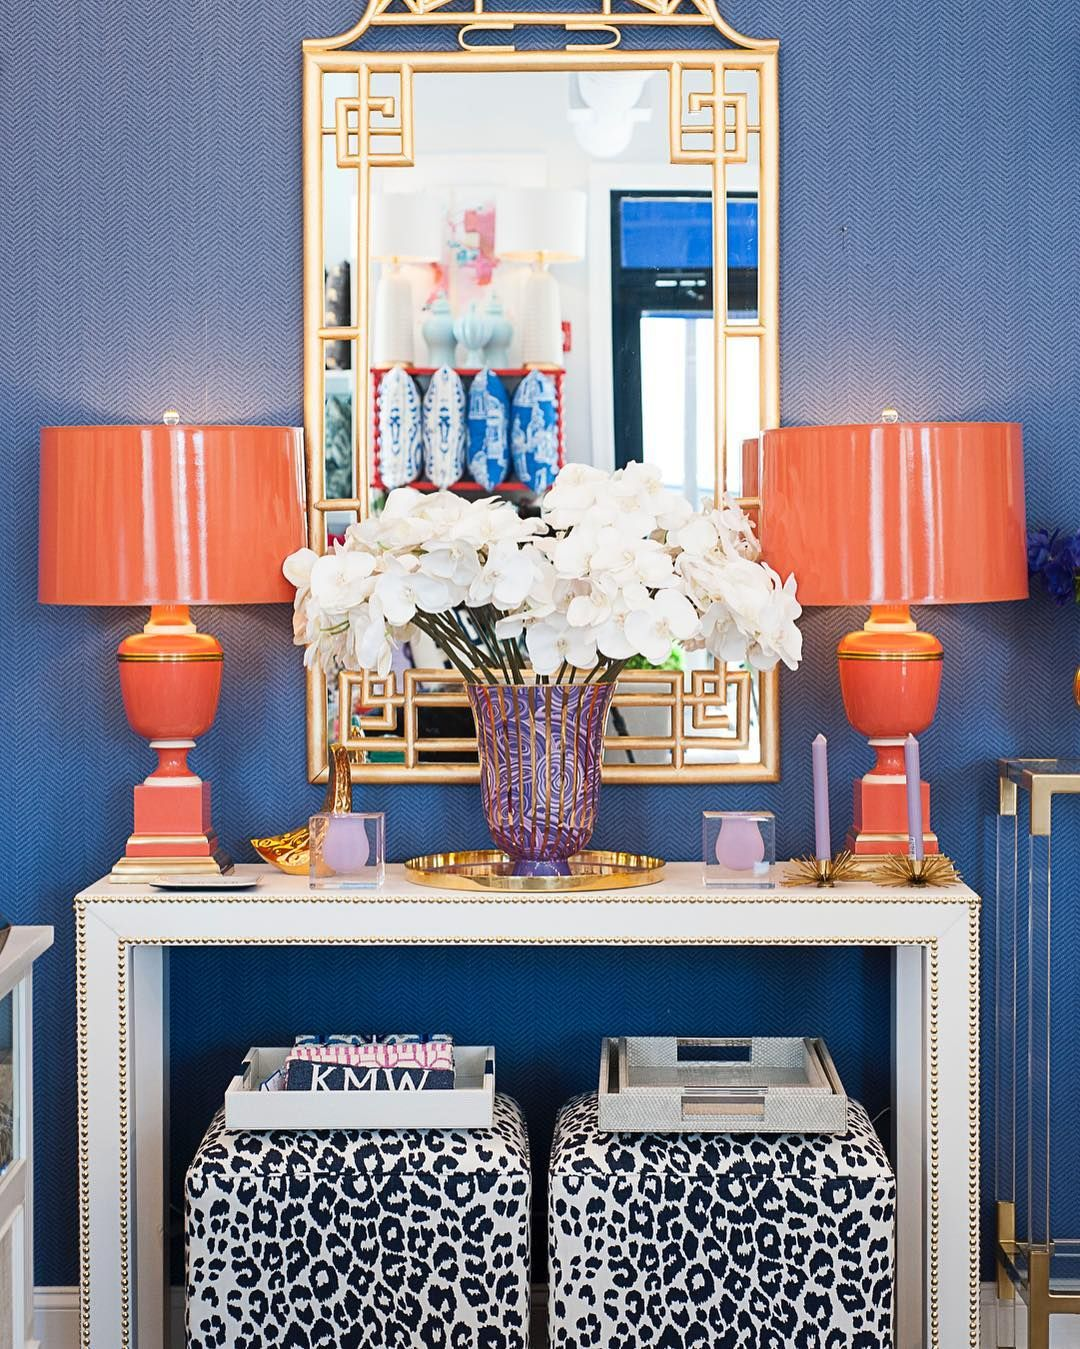 Exuberant Mix Of Colors And Patterns: What A Lovely Mix Of Patterns, Colors And Textures